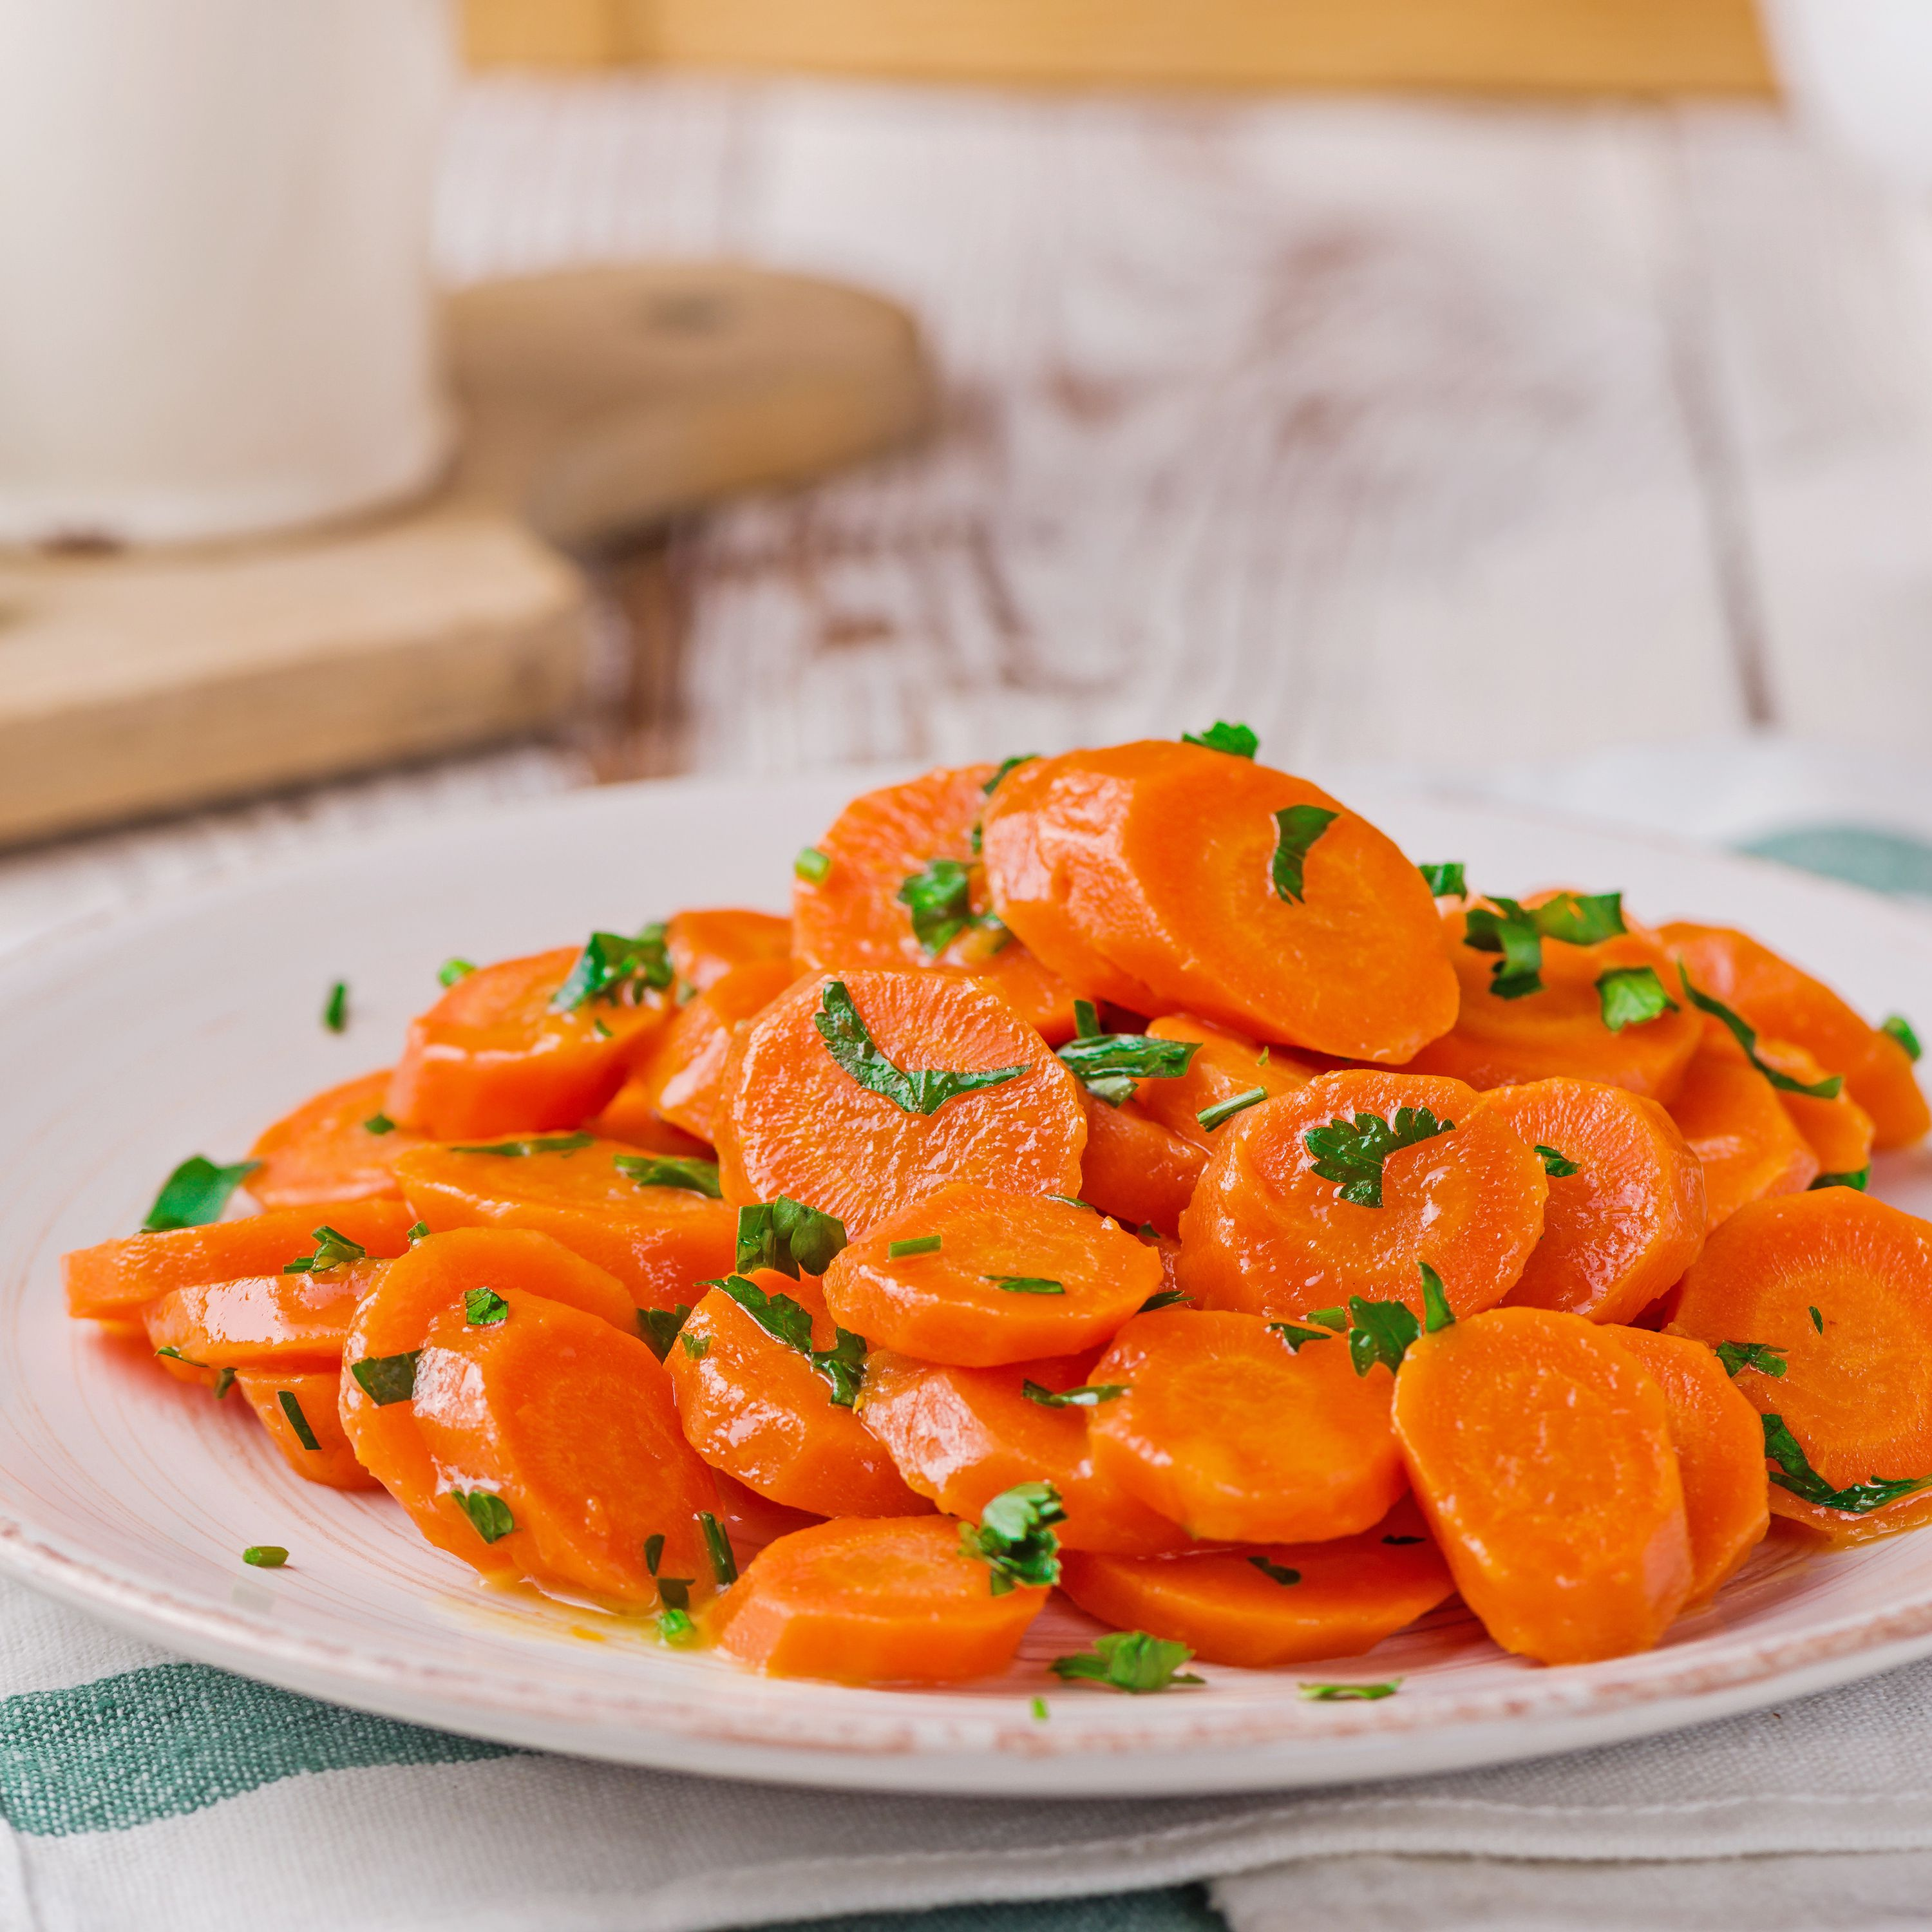 Simple Steamed Carrots With Butter Recipe